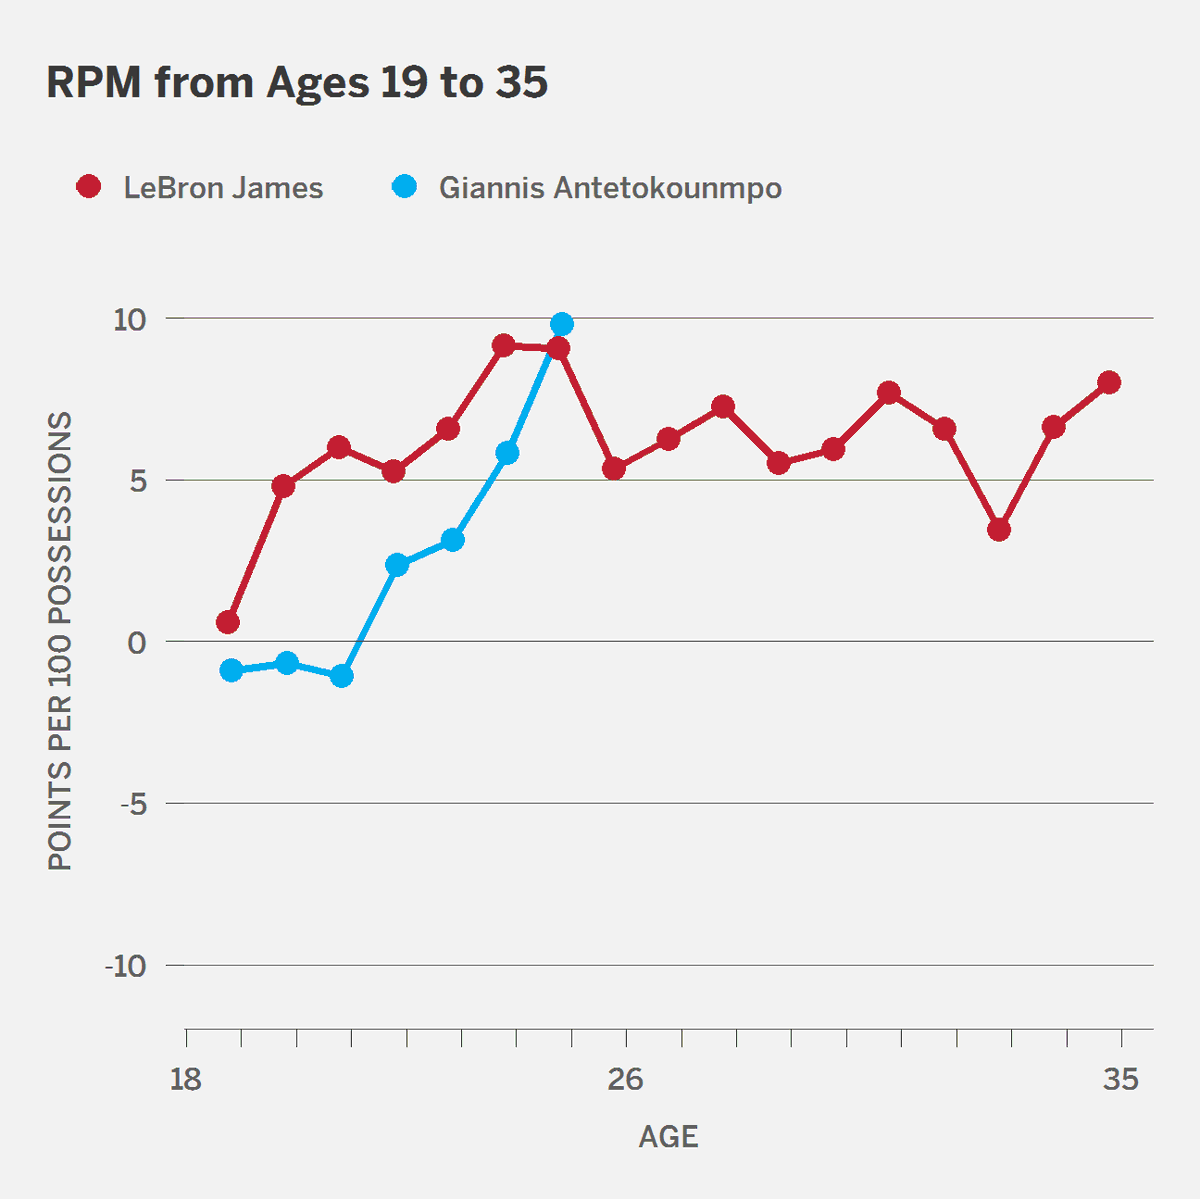 LeBron and Giannis by age https://t.co/847On6pEJm